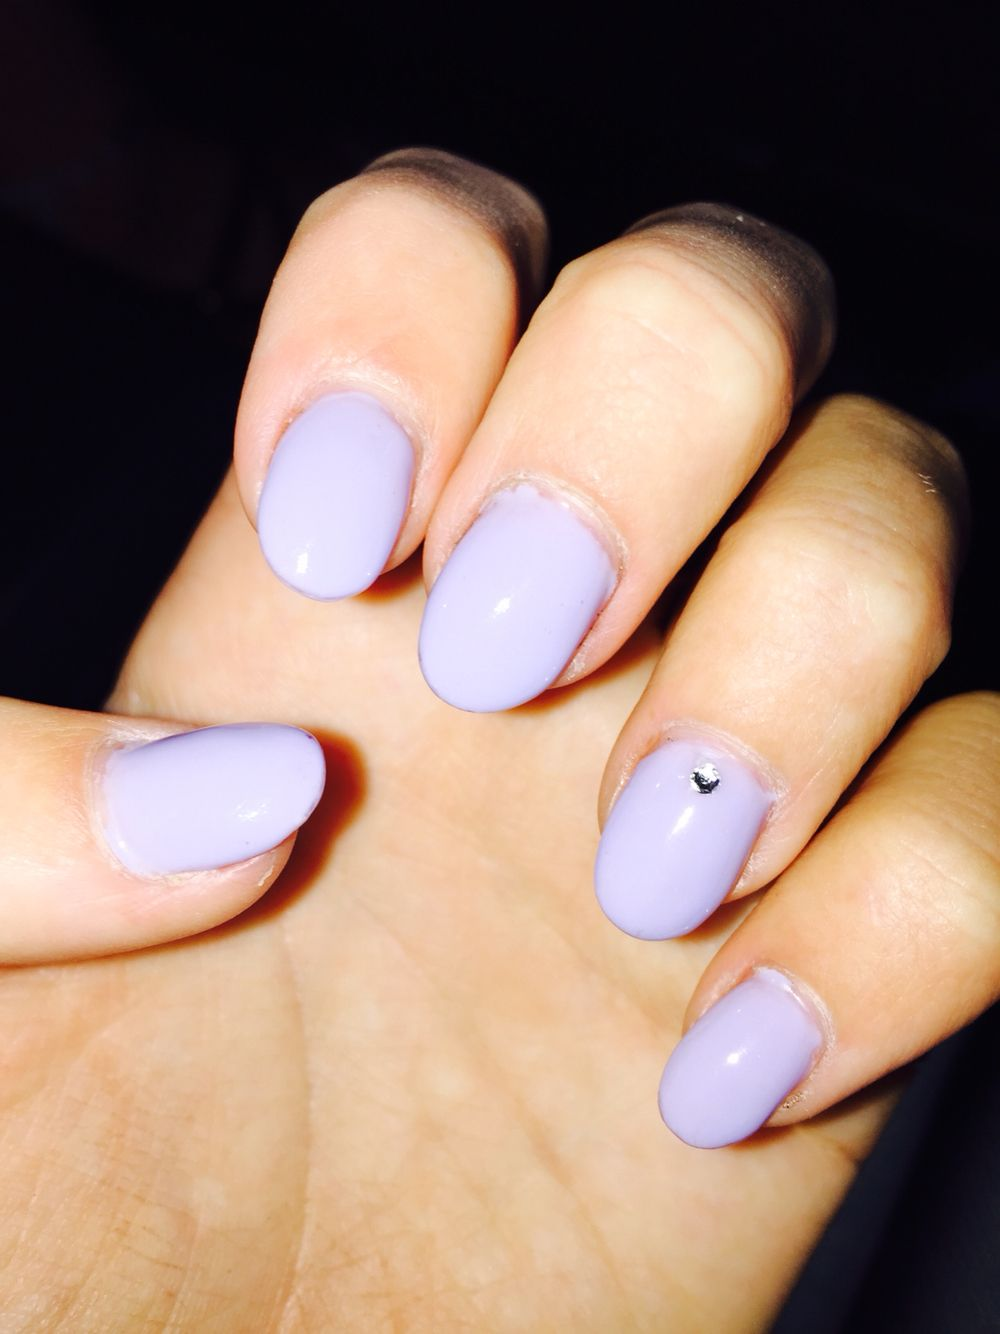 ♡ριитєяєѕт: яуℓєєкιχ♡ | nails | Pinterest | Oval nails, Make up ...